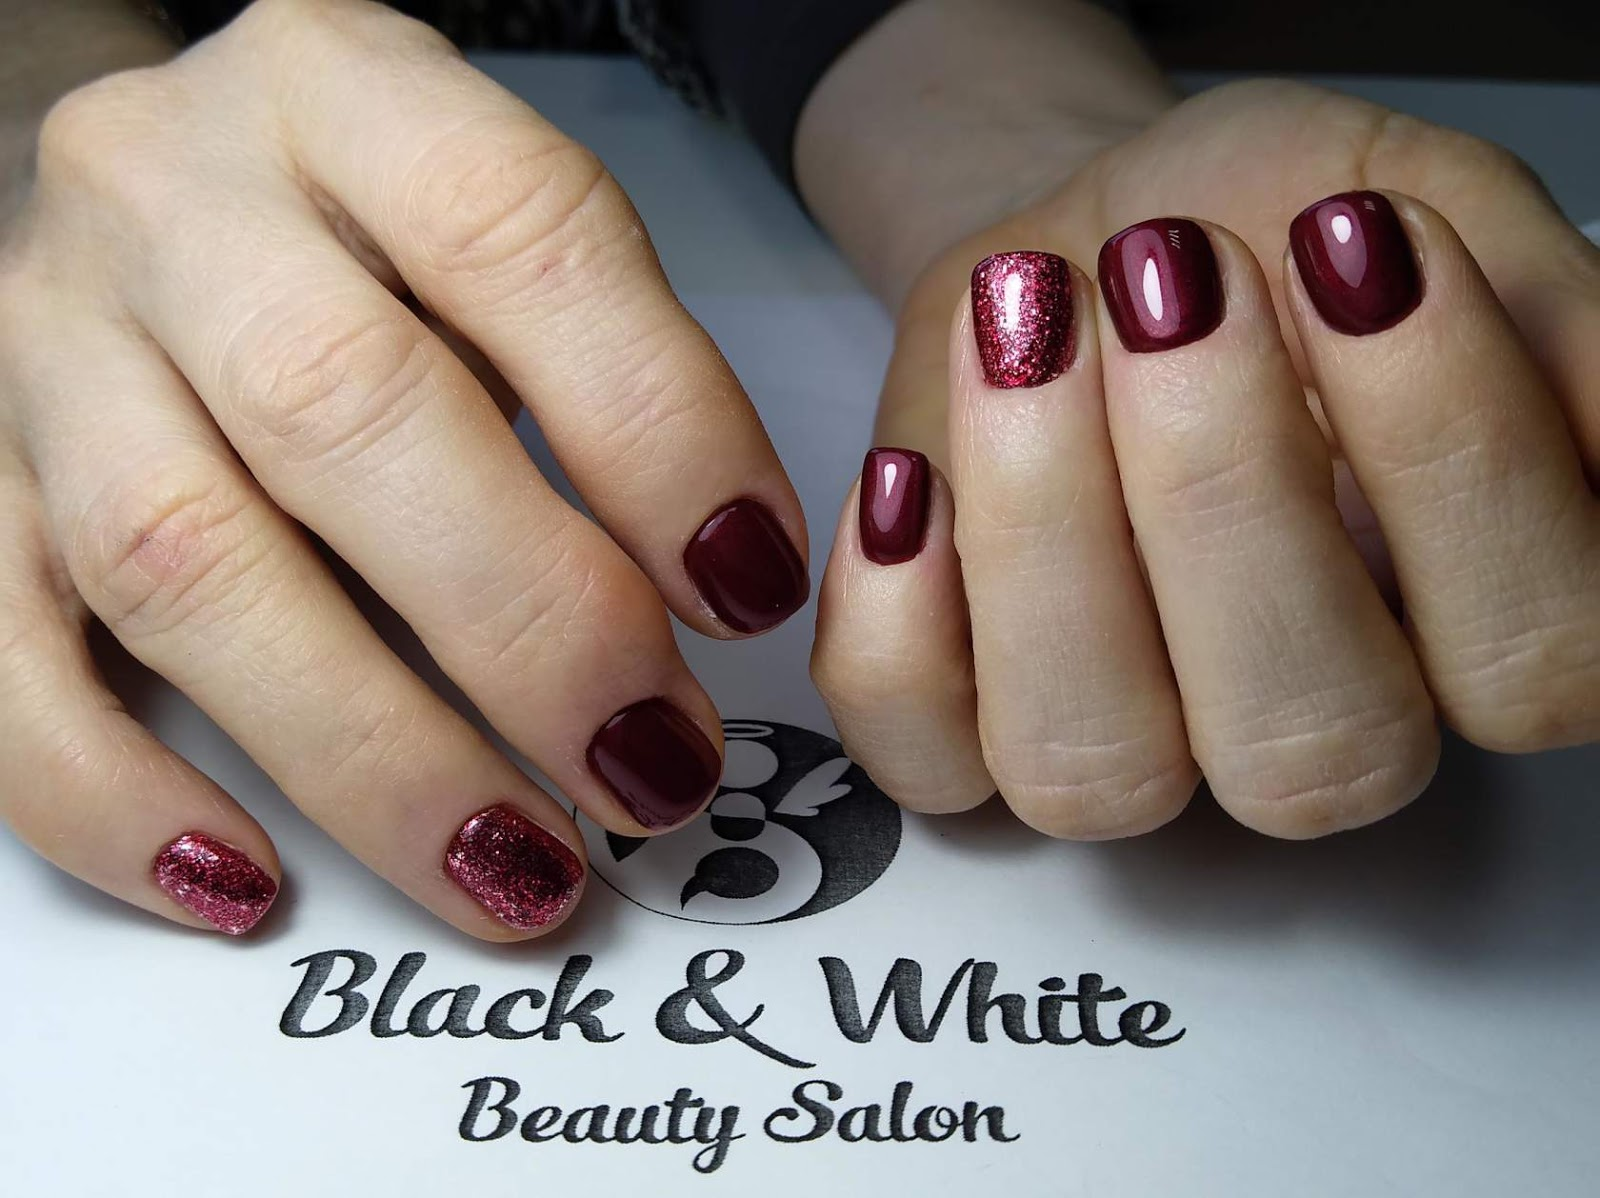 Black & White Nails Art Disign: Las Vegas Hair And Nail Convention